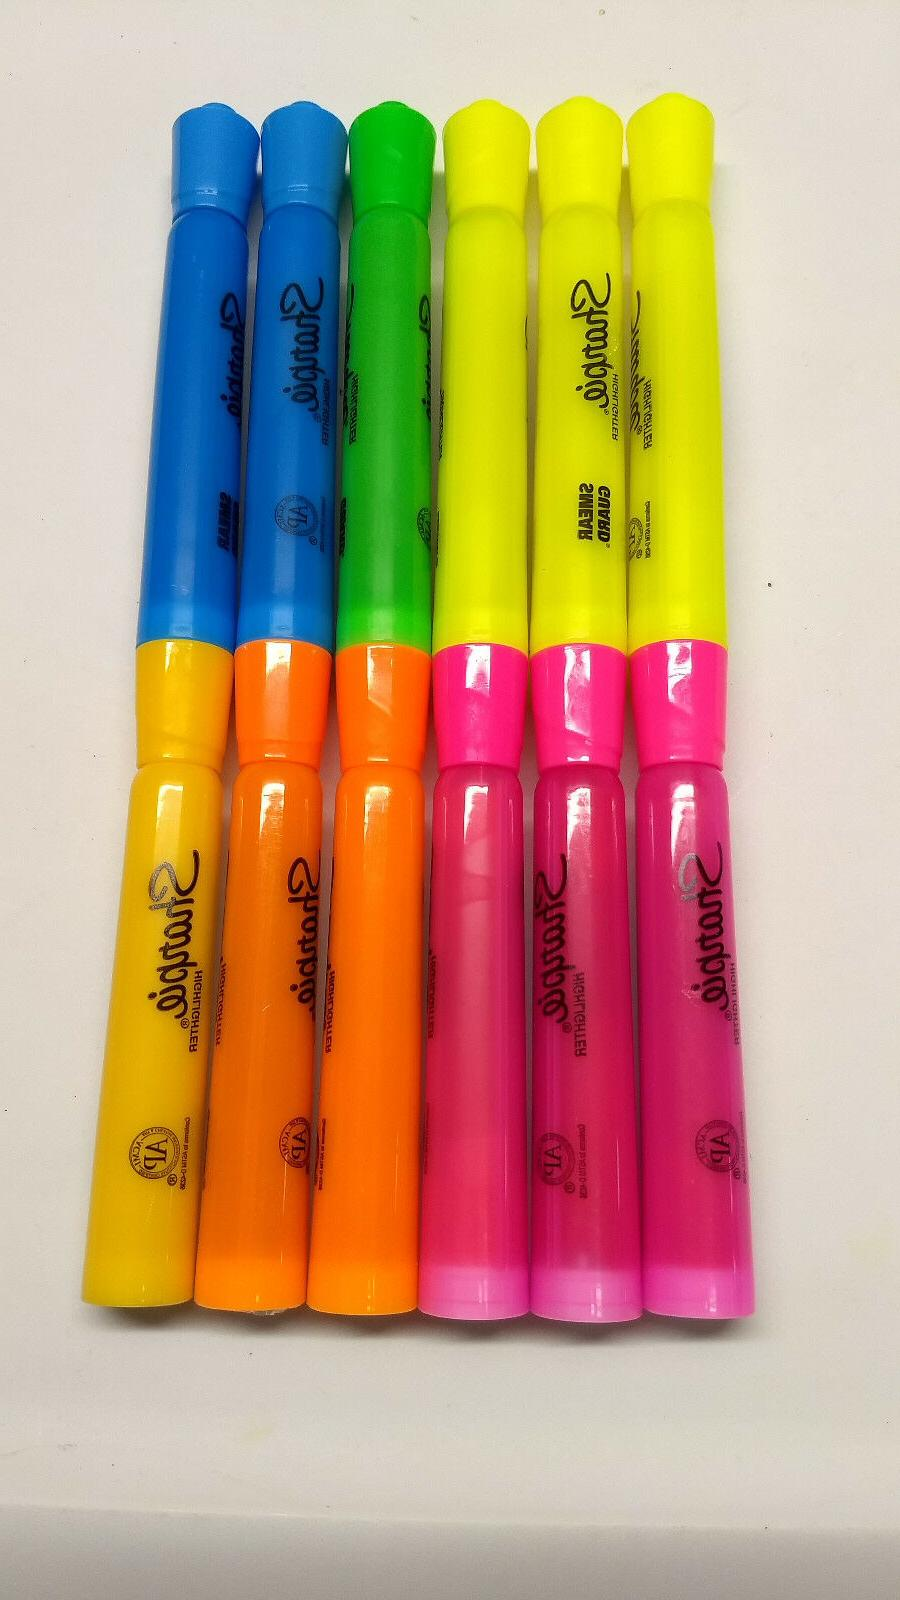 tank highlighters chisel tip assorted colors 12